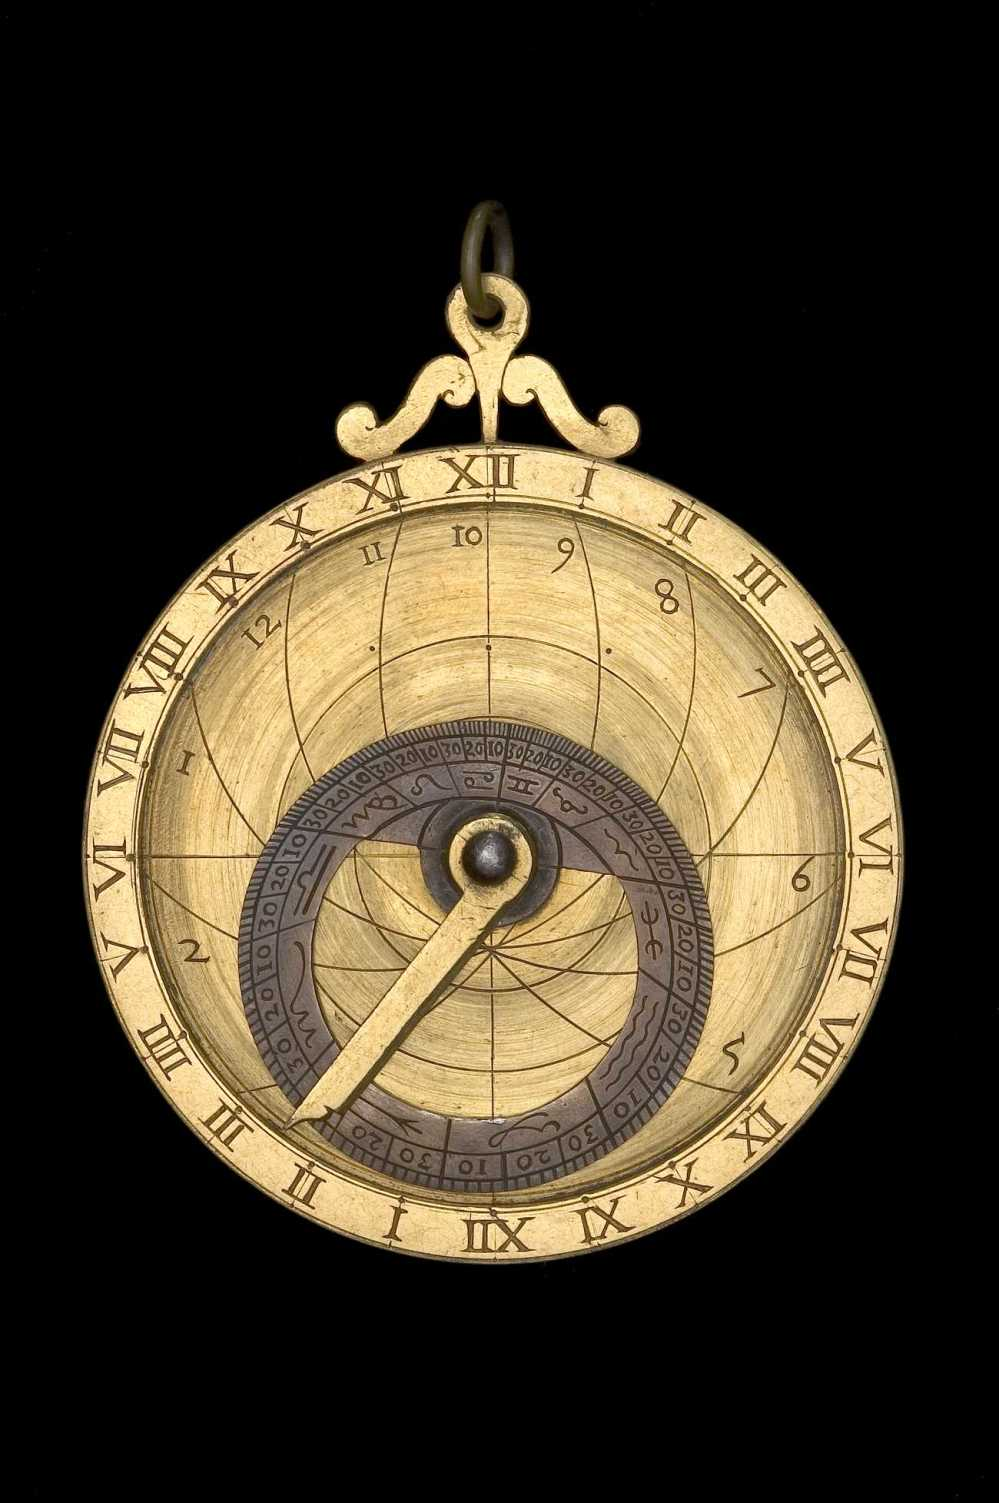 preview image for Fake? Astrological Astrolabe